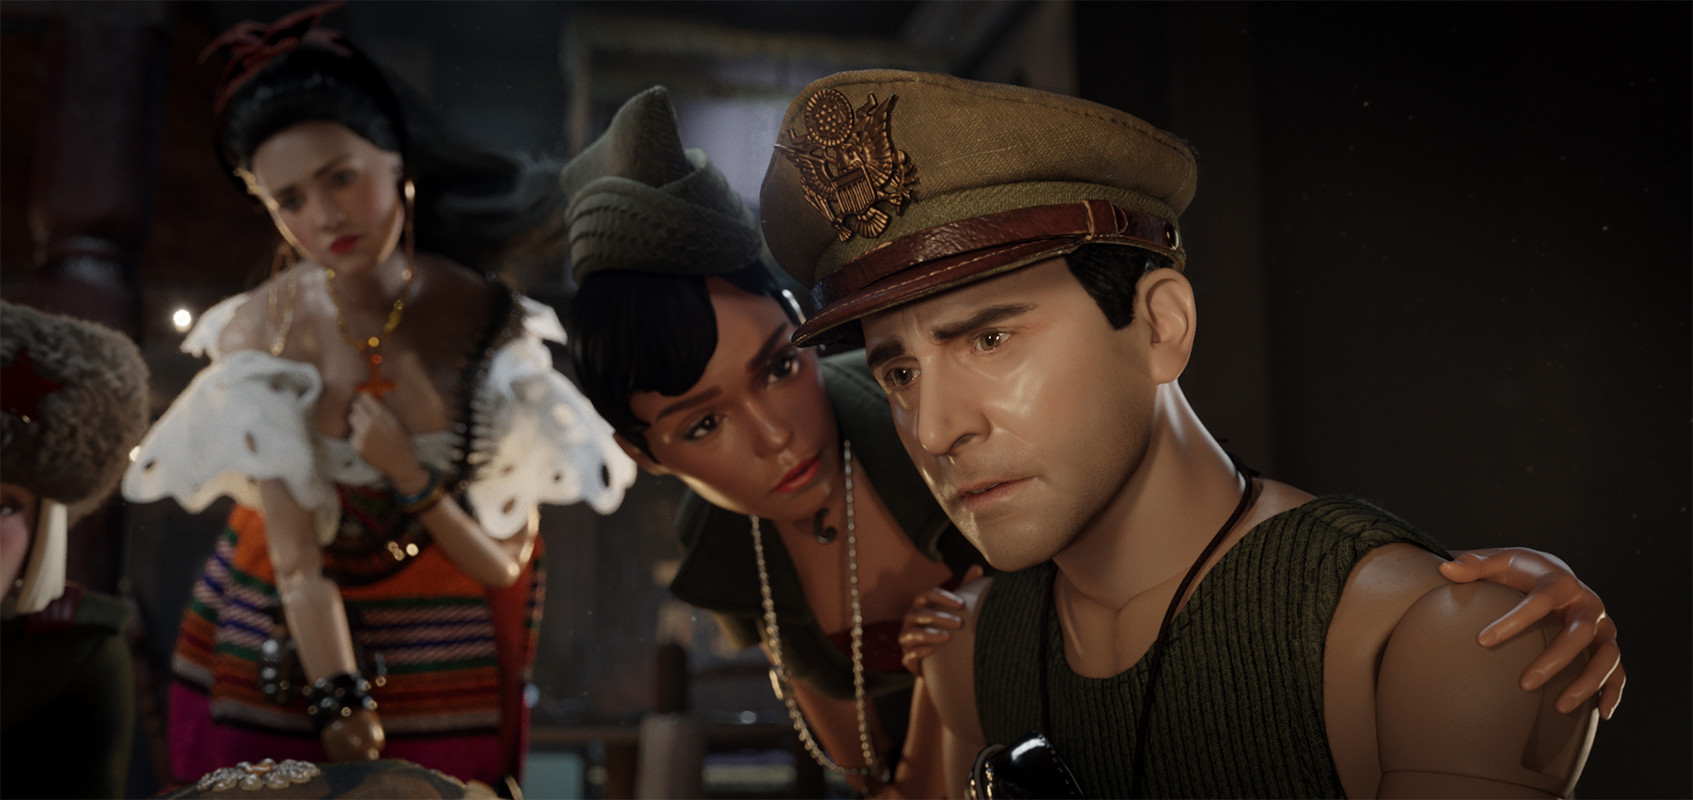 Steve Carell and Janelle Monae in Welcome to Marwen